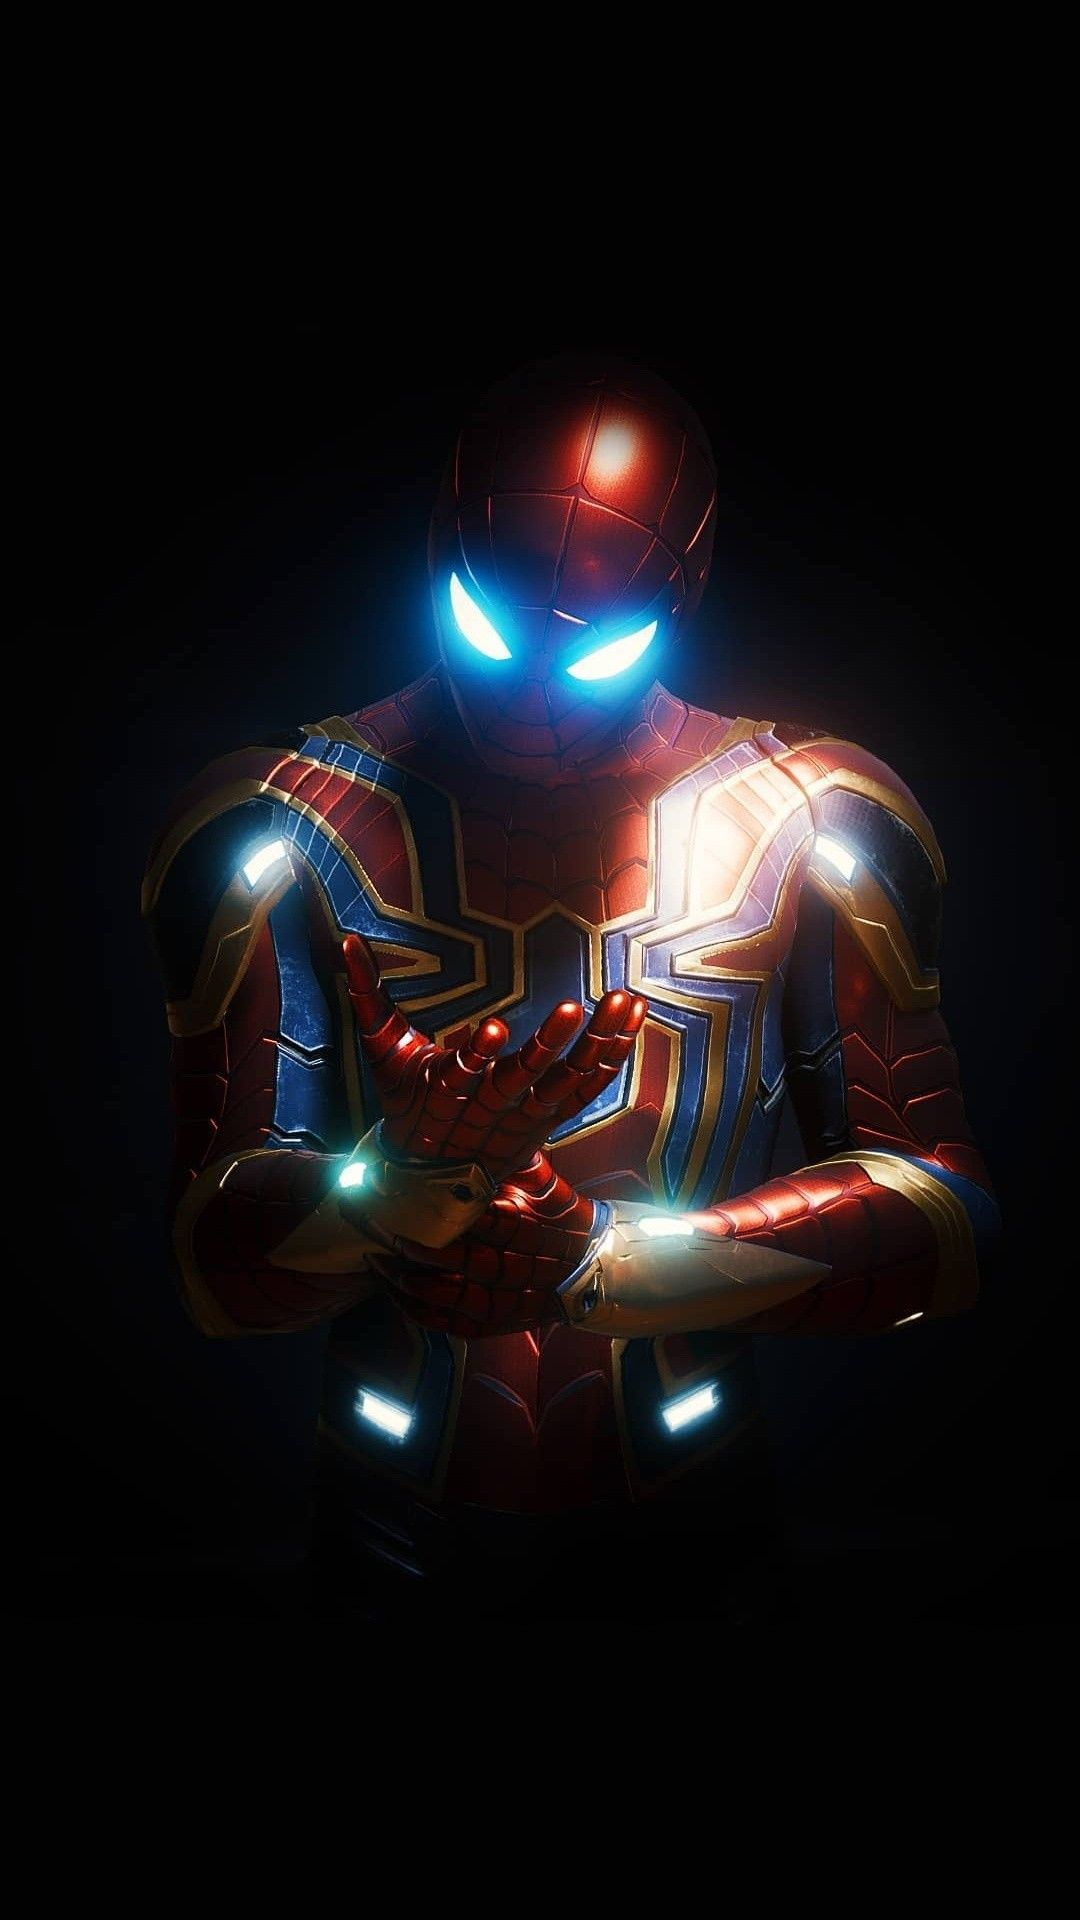 Spiderman Latest Wallpaper Download The App Now Link In The